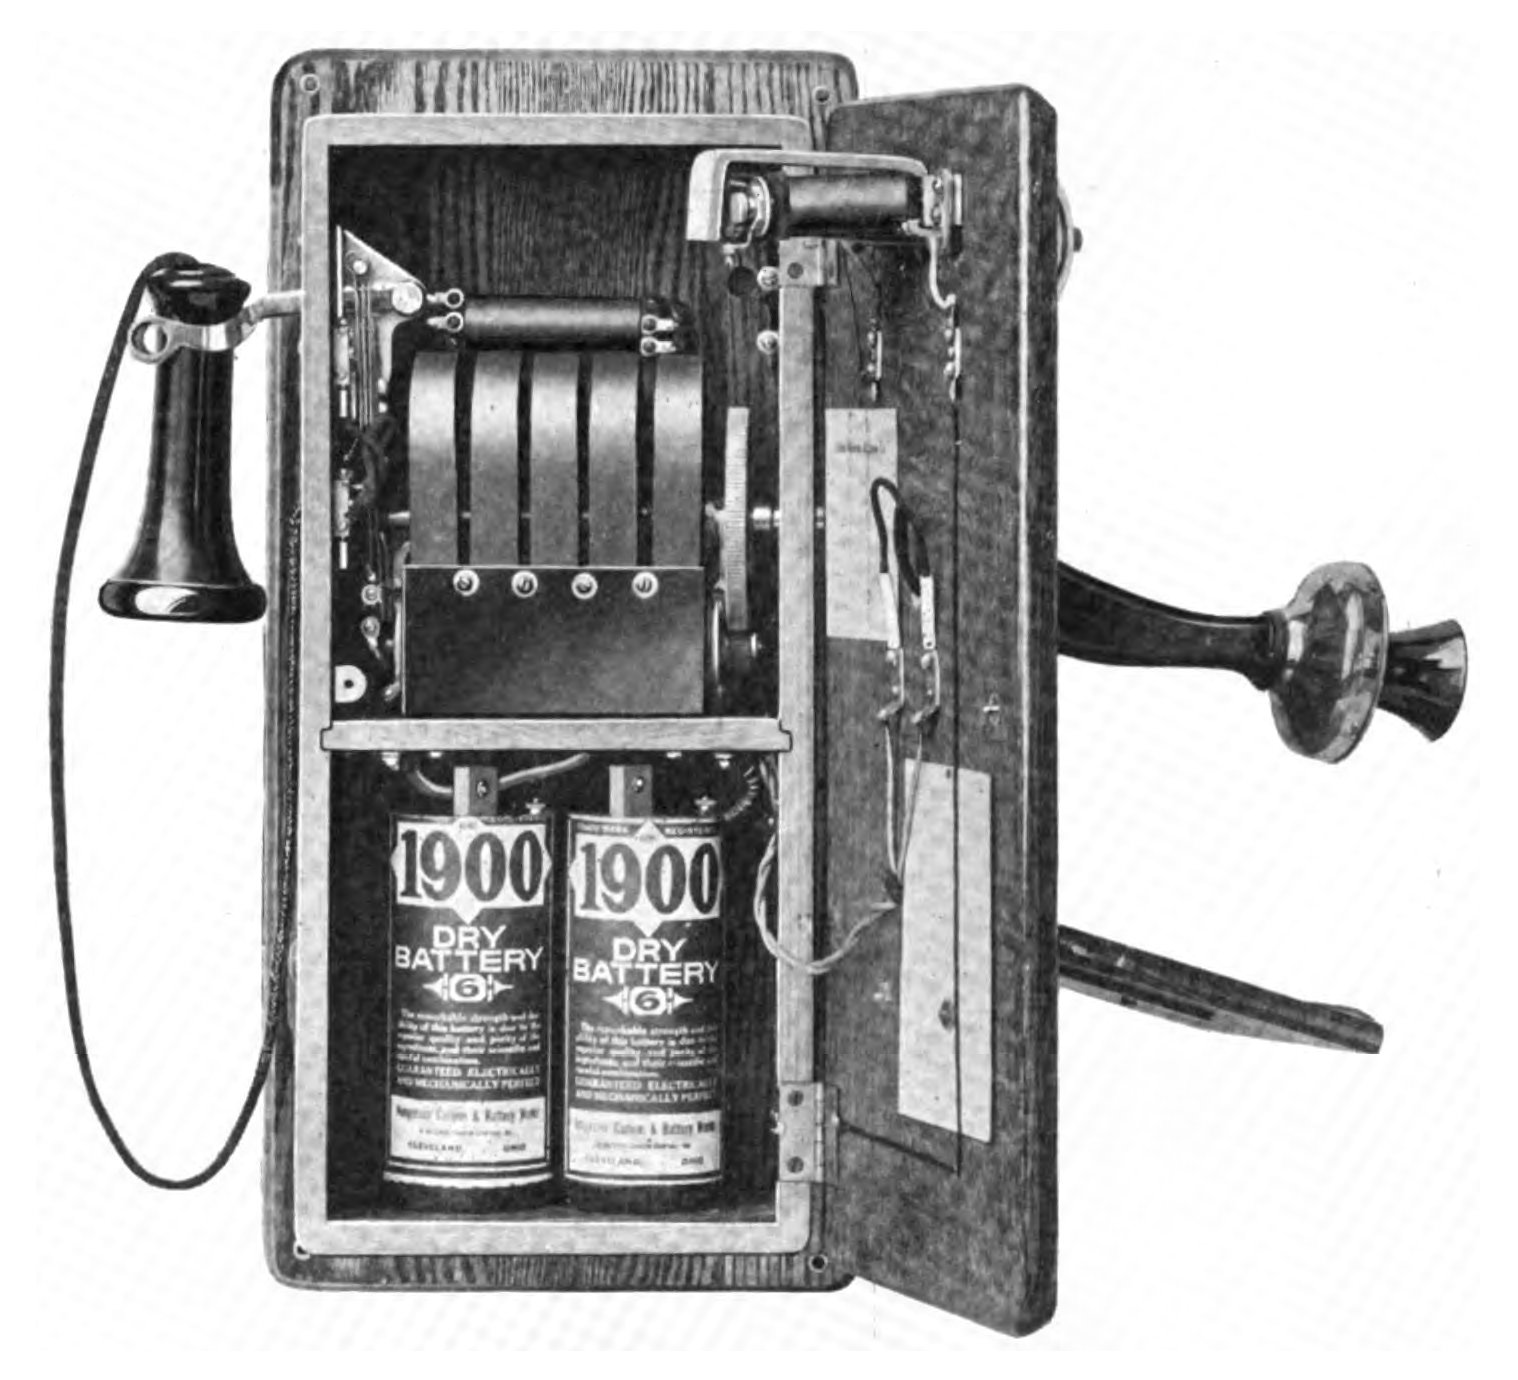 We've been fascinated with the telephone since it's invention... and what a trip we've been on ever since!